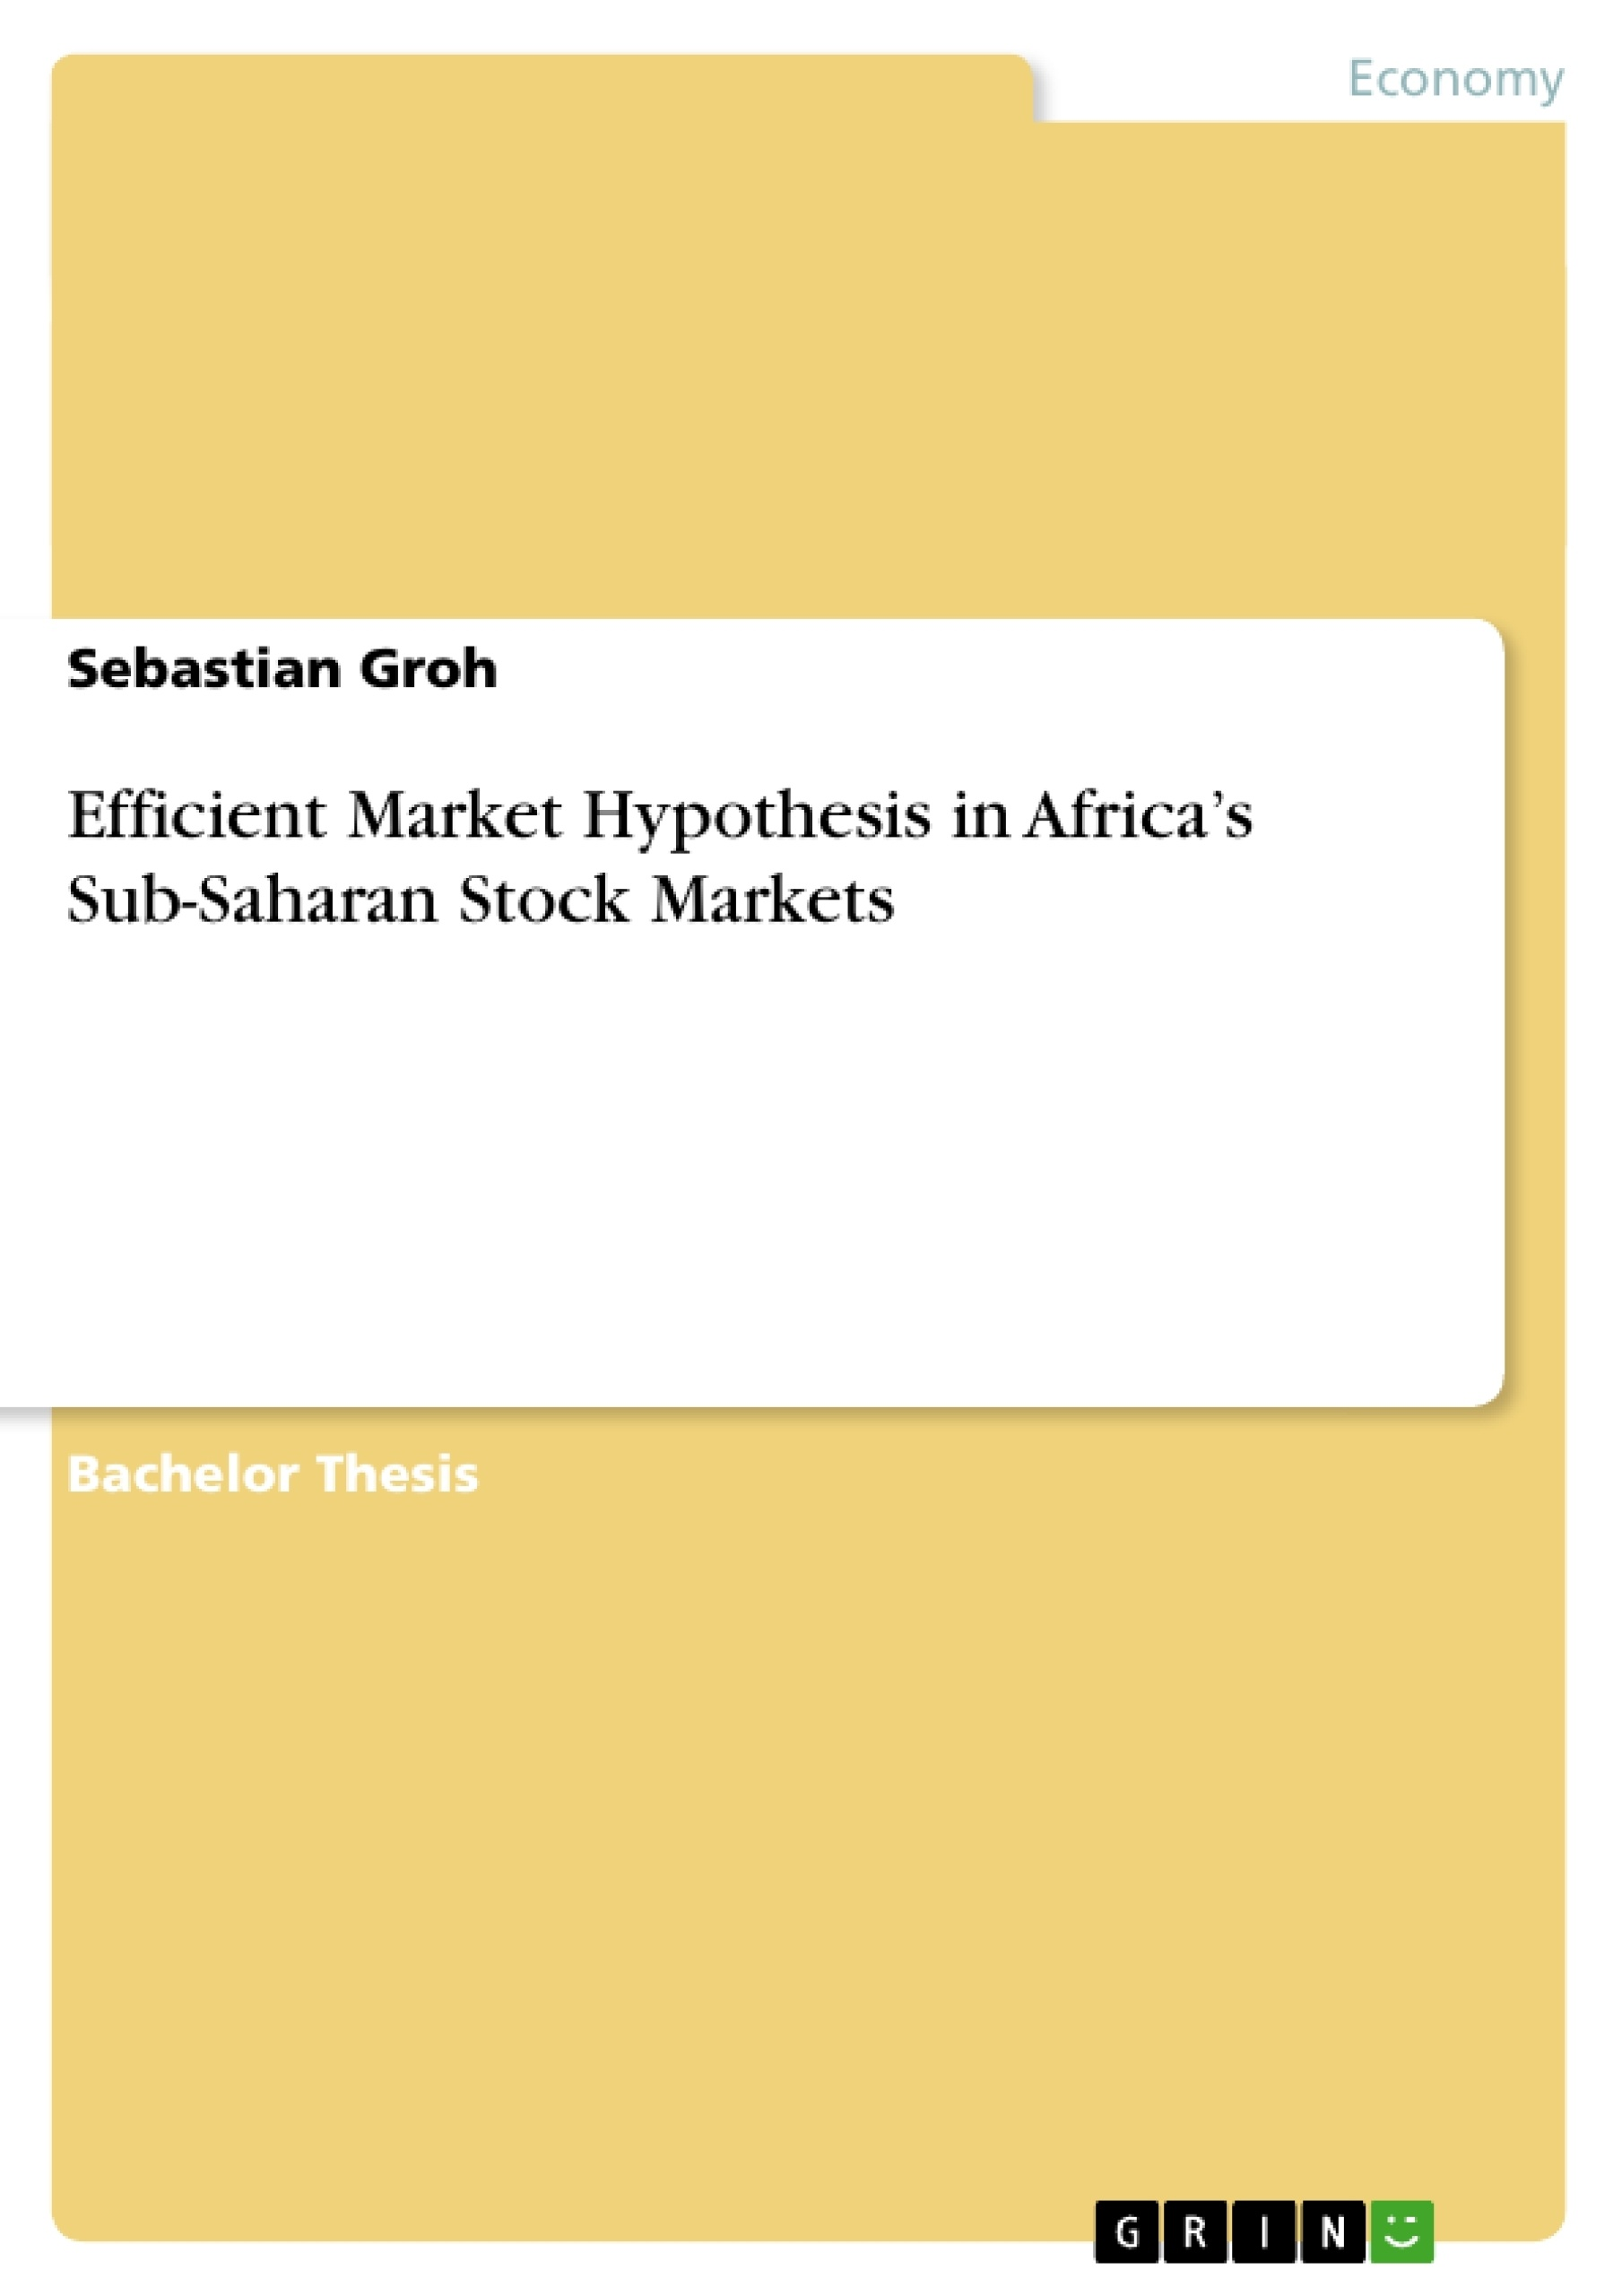 Title: Efficient Market Hypothesis in Africa's Sub-Saharan Stock Markets